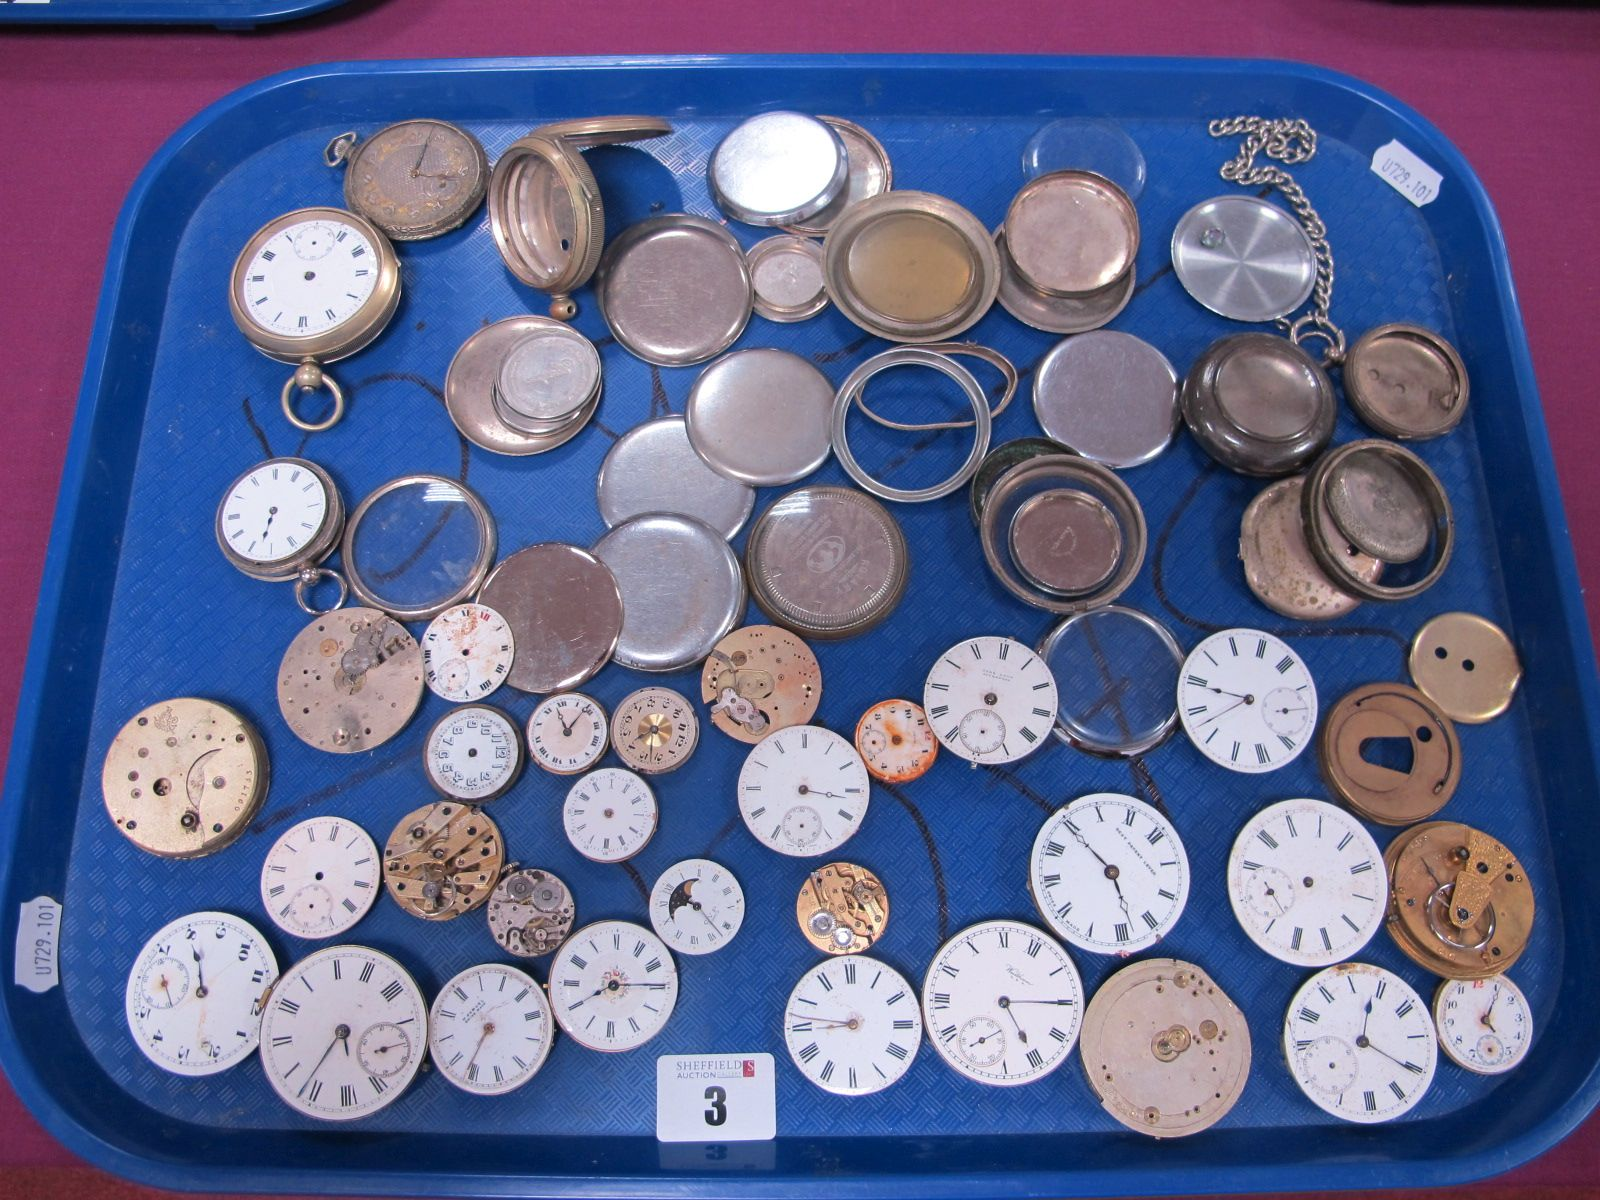 Assorted Pocketwatch Movements / Dials, (damages / incomplete) including Waltham, John Lyon